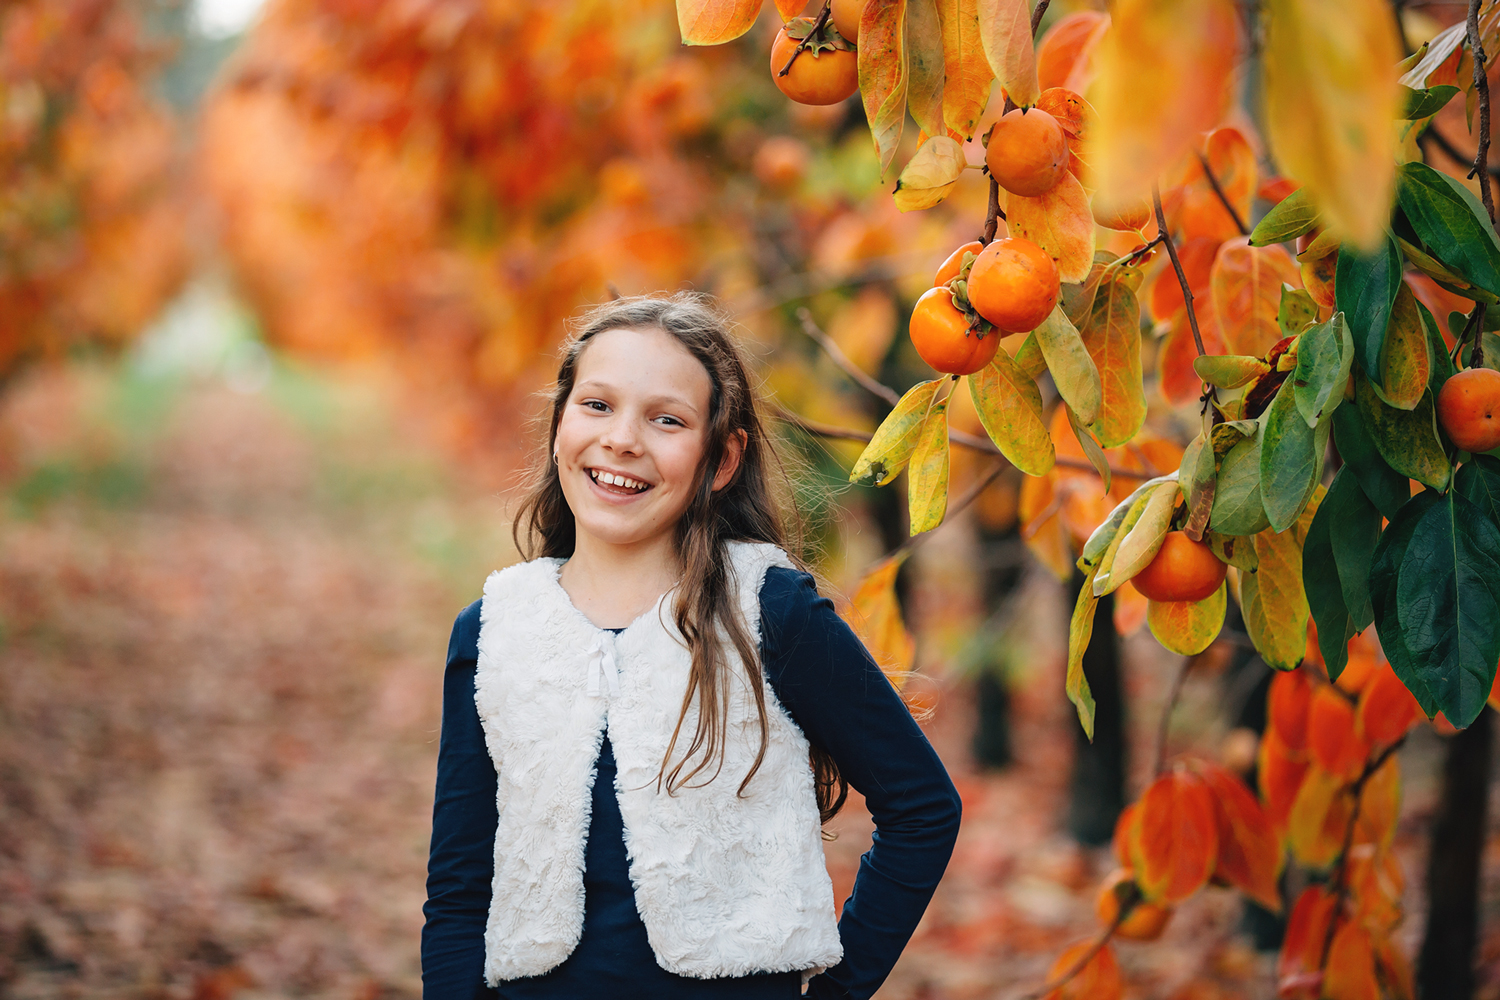 Smiles-in-the-orchard-at-Raeburn.jpg